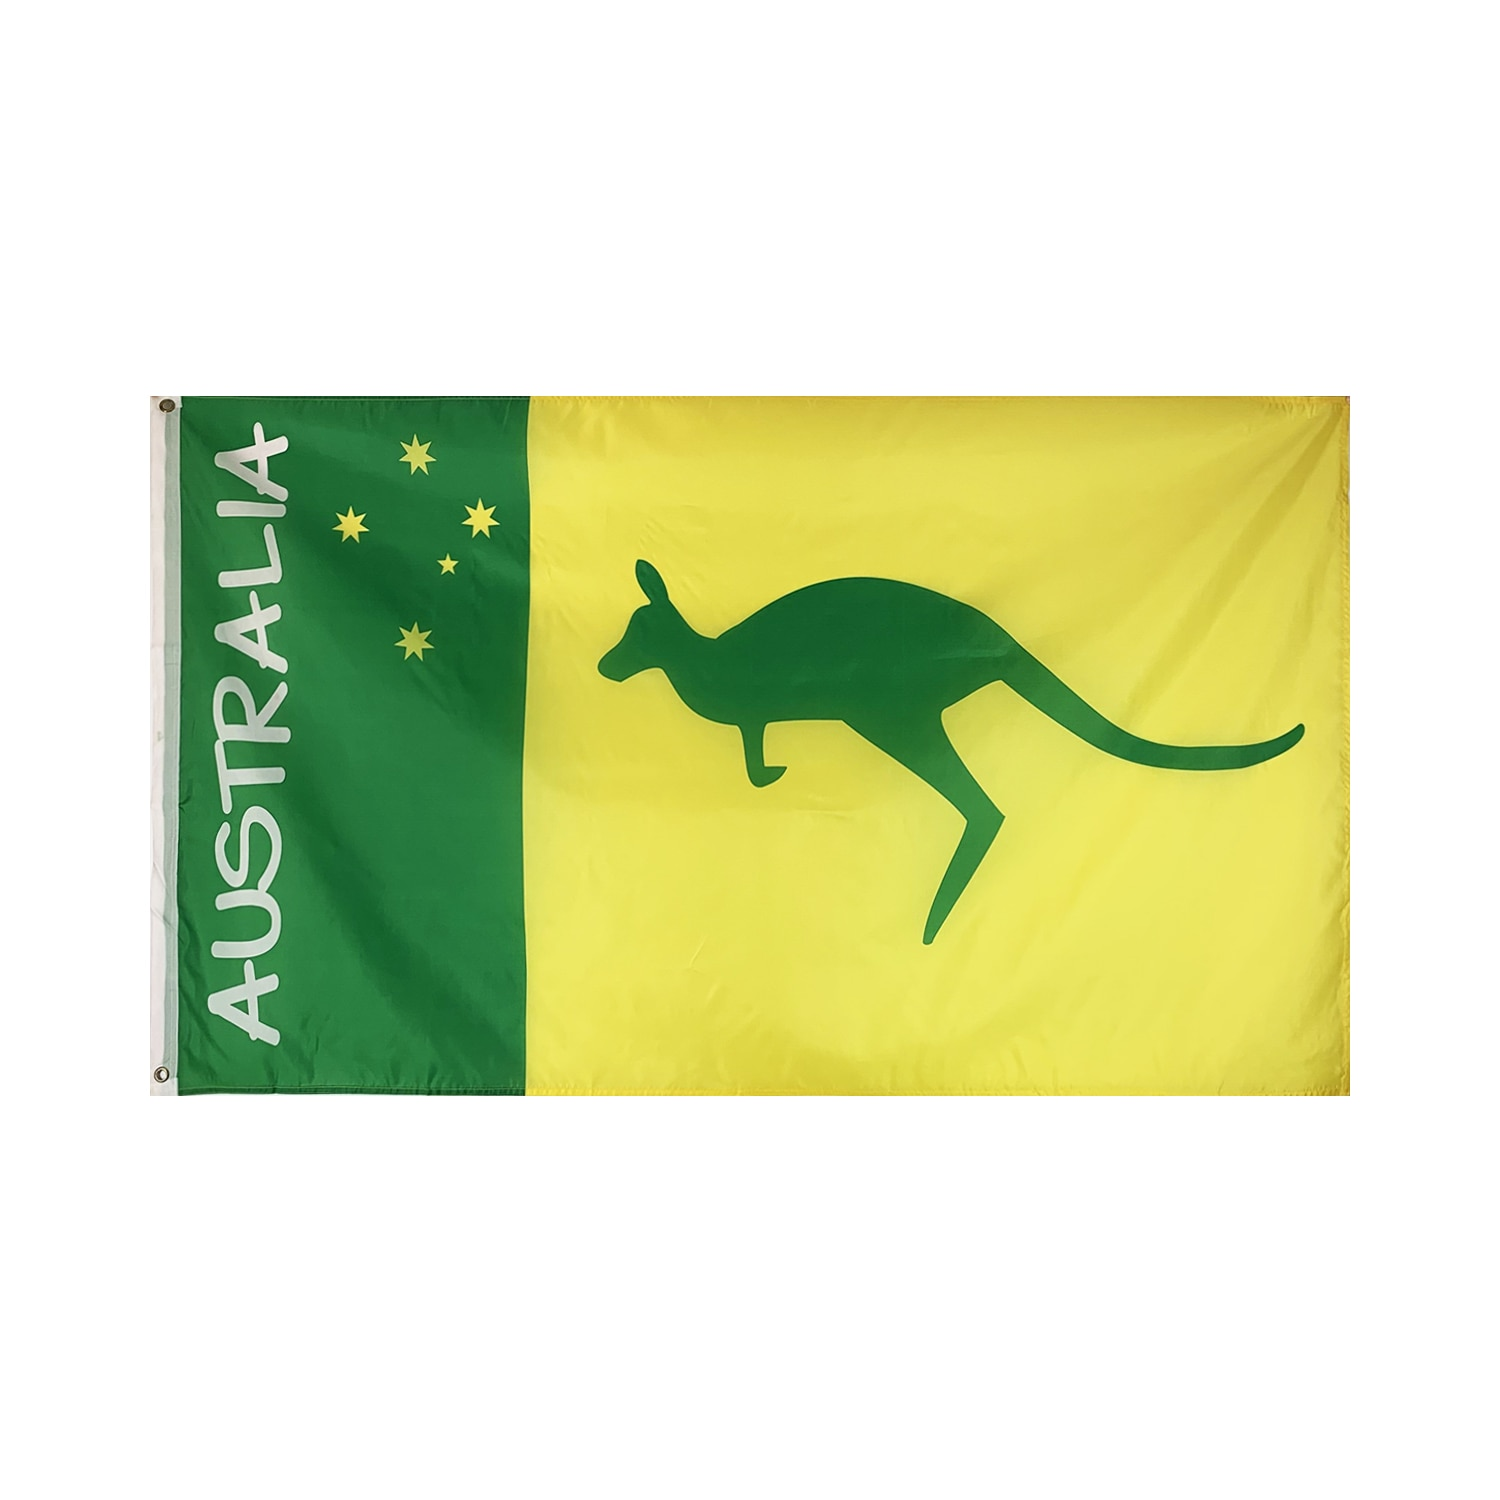 Flagnshow 90x150cm 3x5ft Australia Flags and Banners Australian National Symbol Boxing Kangaroo Flag for Rooms Decoration 201 countries flag national flag symbol fridge magnets combine order accept wholesale business souvenirs